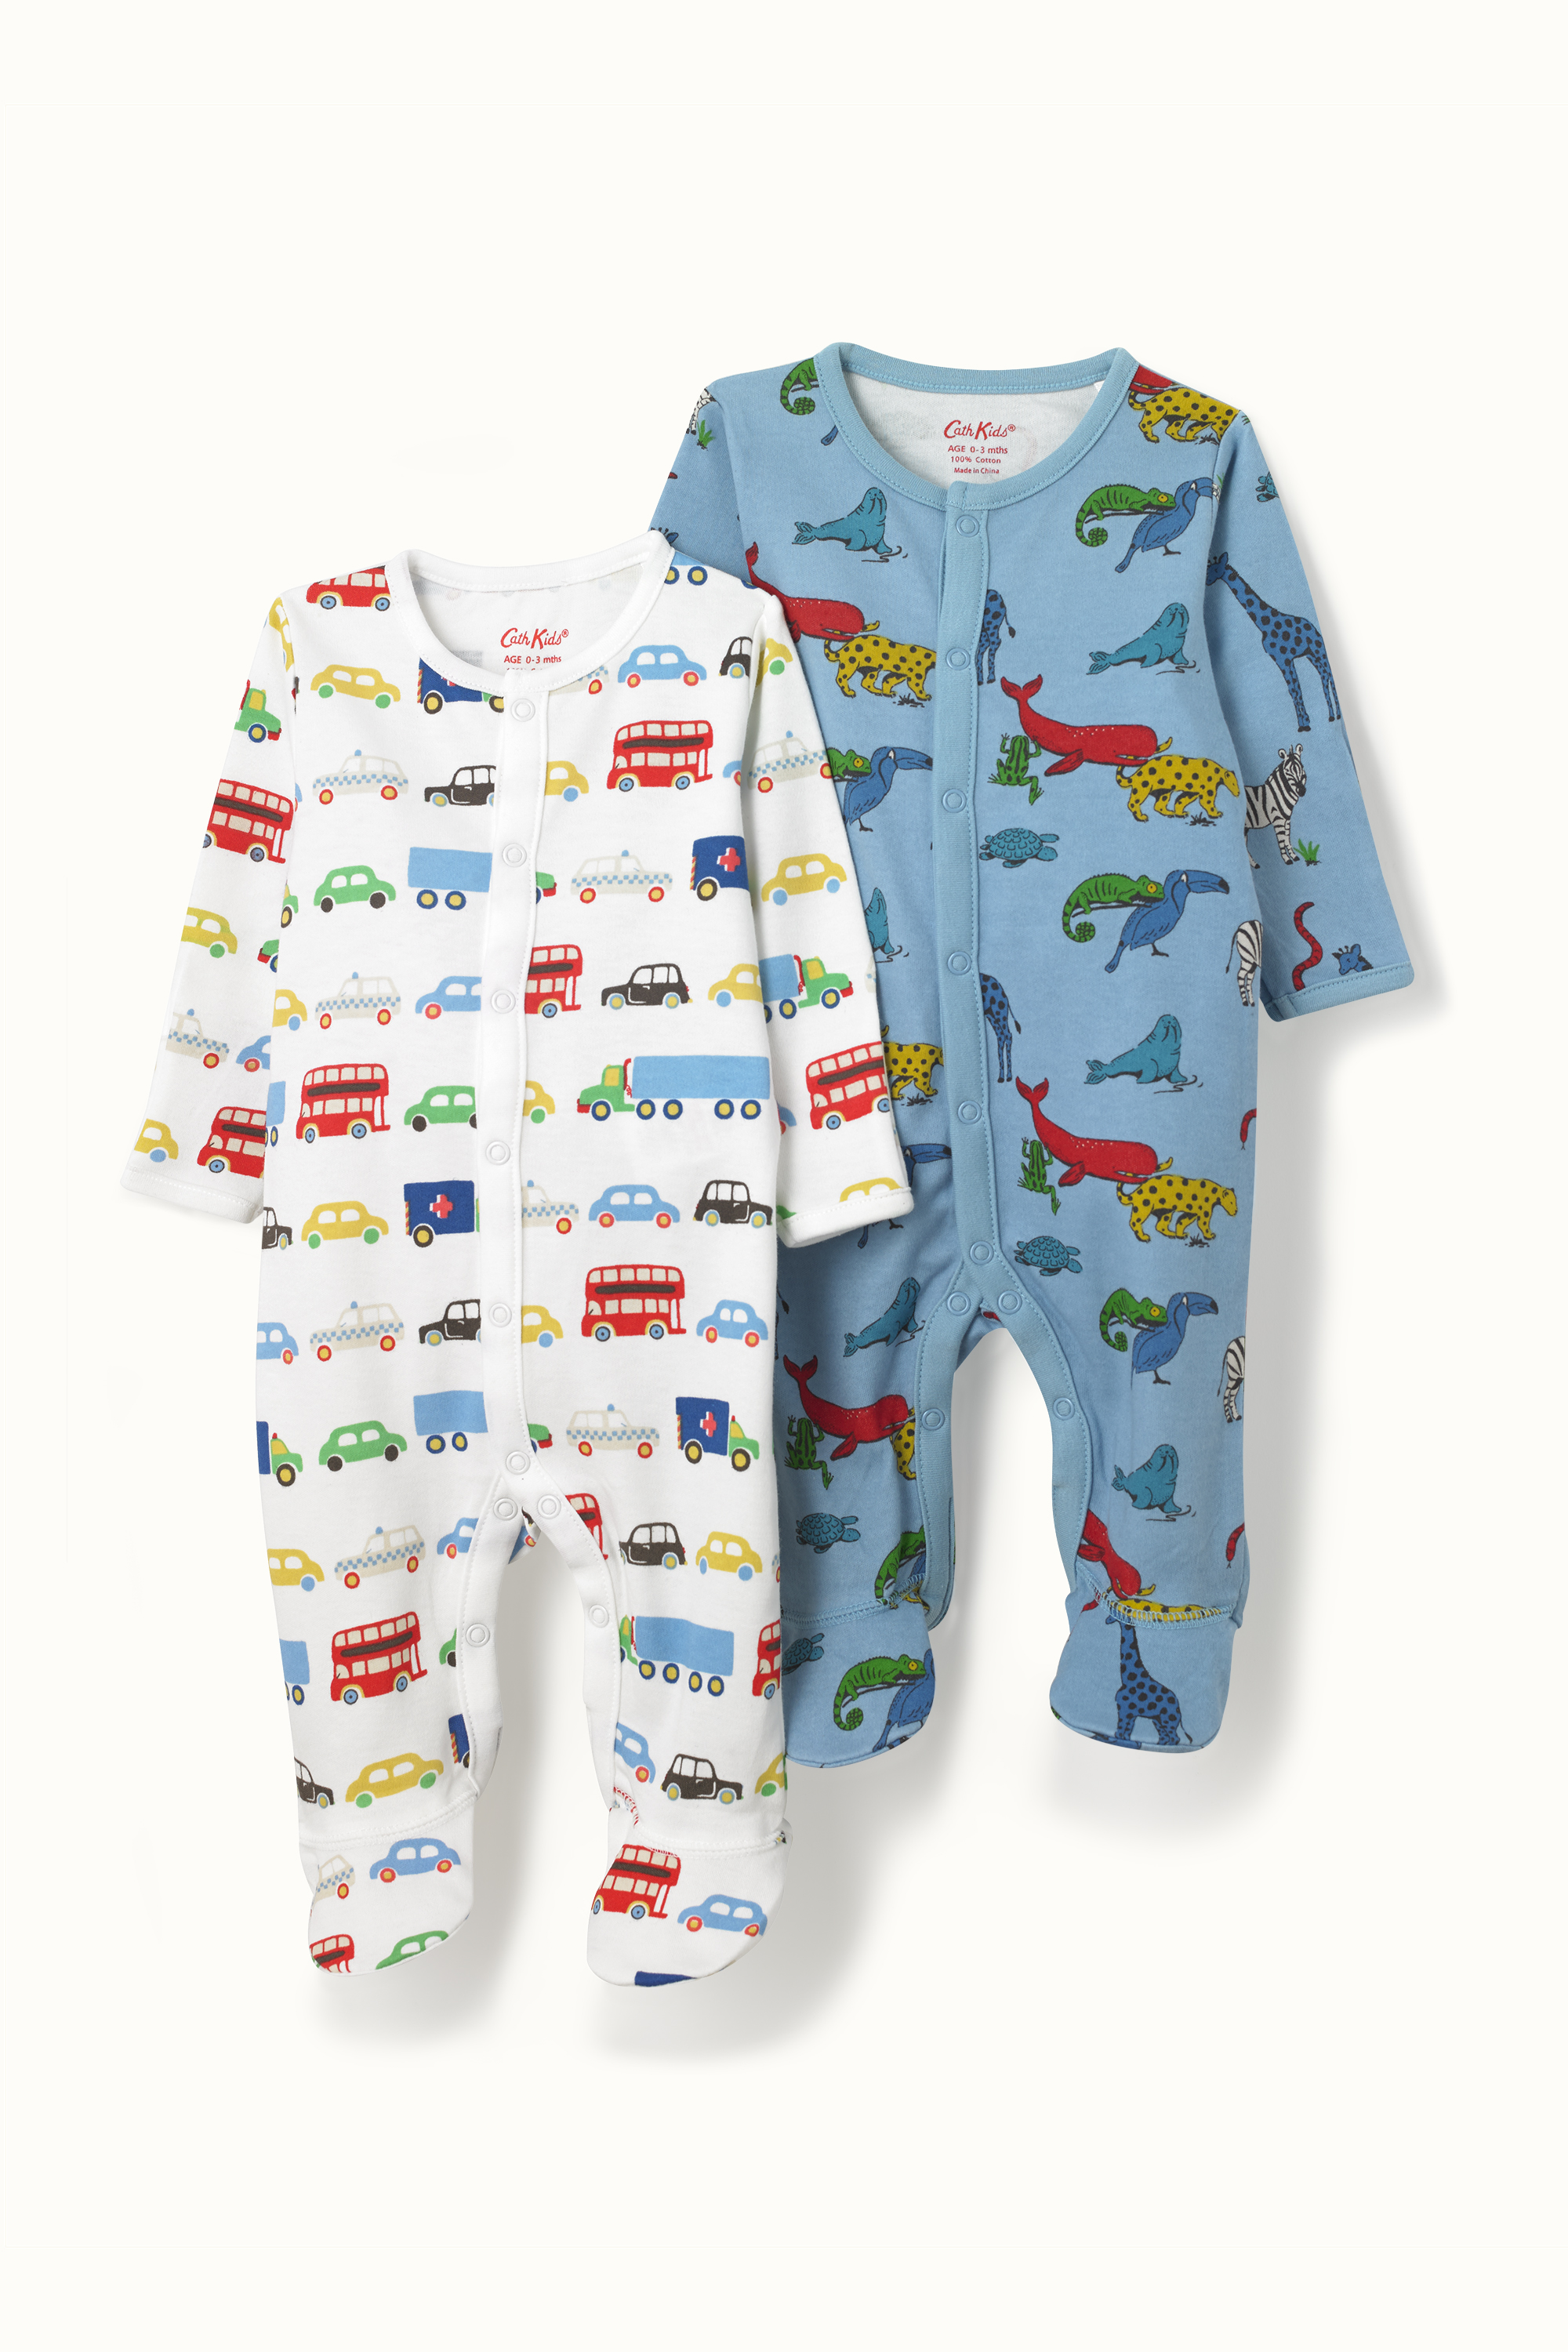 Cath Kidston Two Pack Transport and Animals Sleepsuit in Oyster Shell, 3-6 Mo